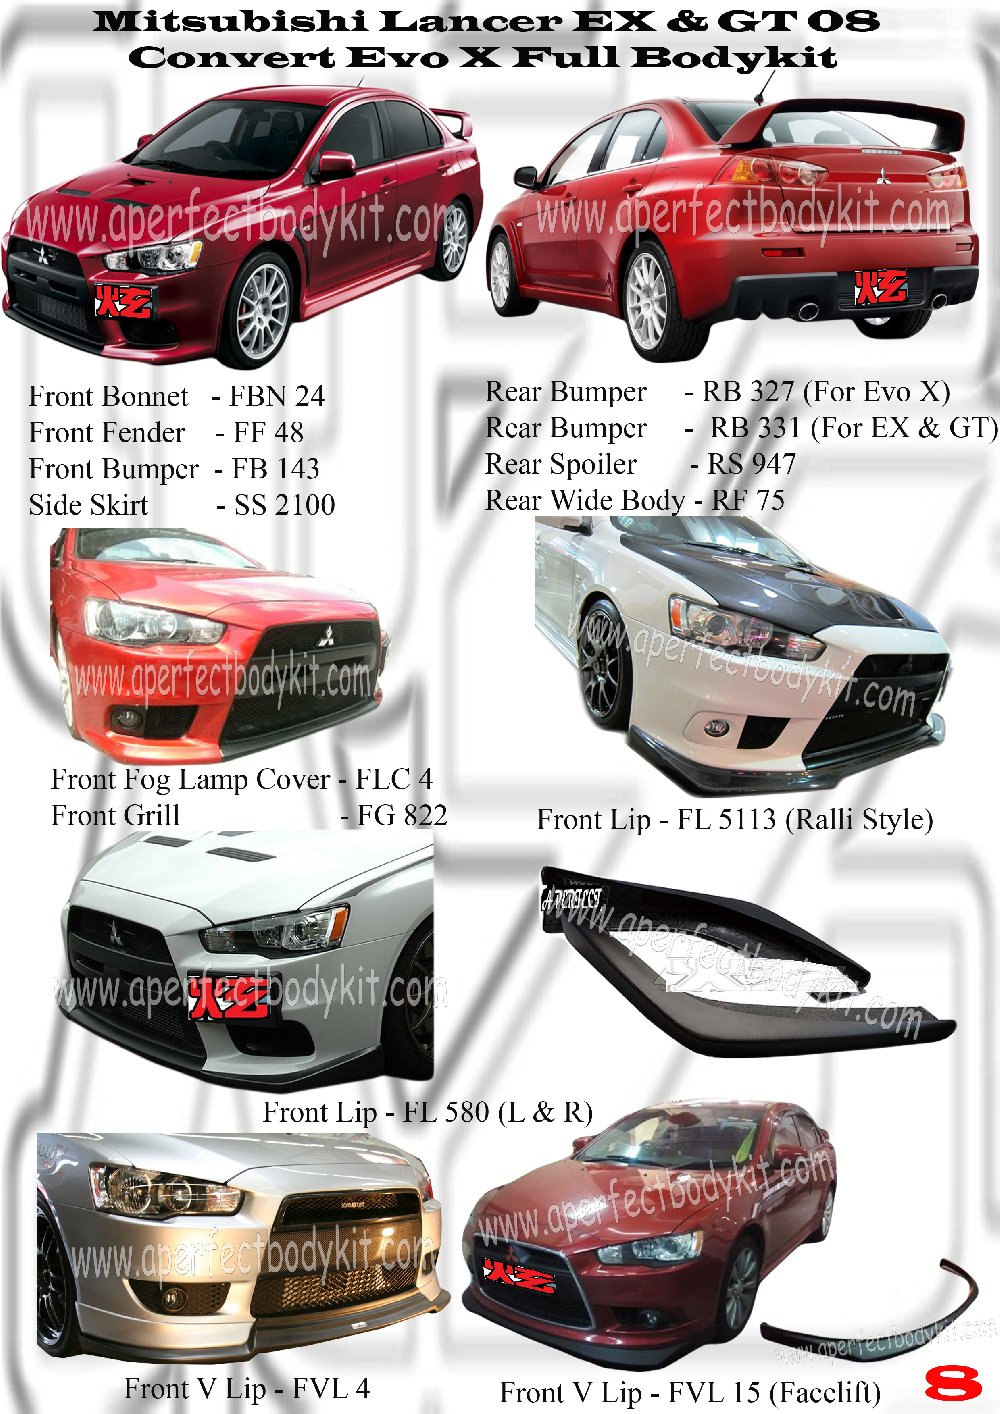 Gw Gx S furthermore F A D moreover Tuning Car Toyota Yaris moreover Convertible T B furthermore Toyota Highlander Fwd Door Base Natl Instrument Cluster L. on 2008 toyota celica